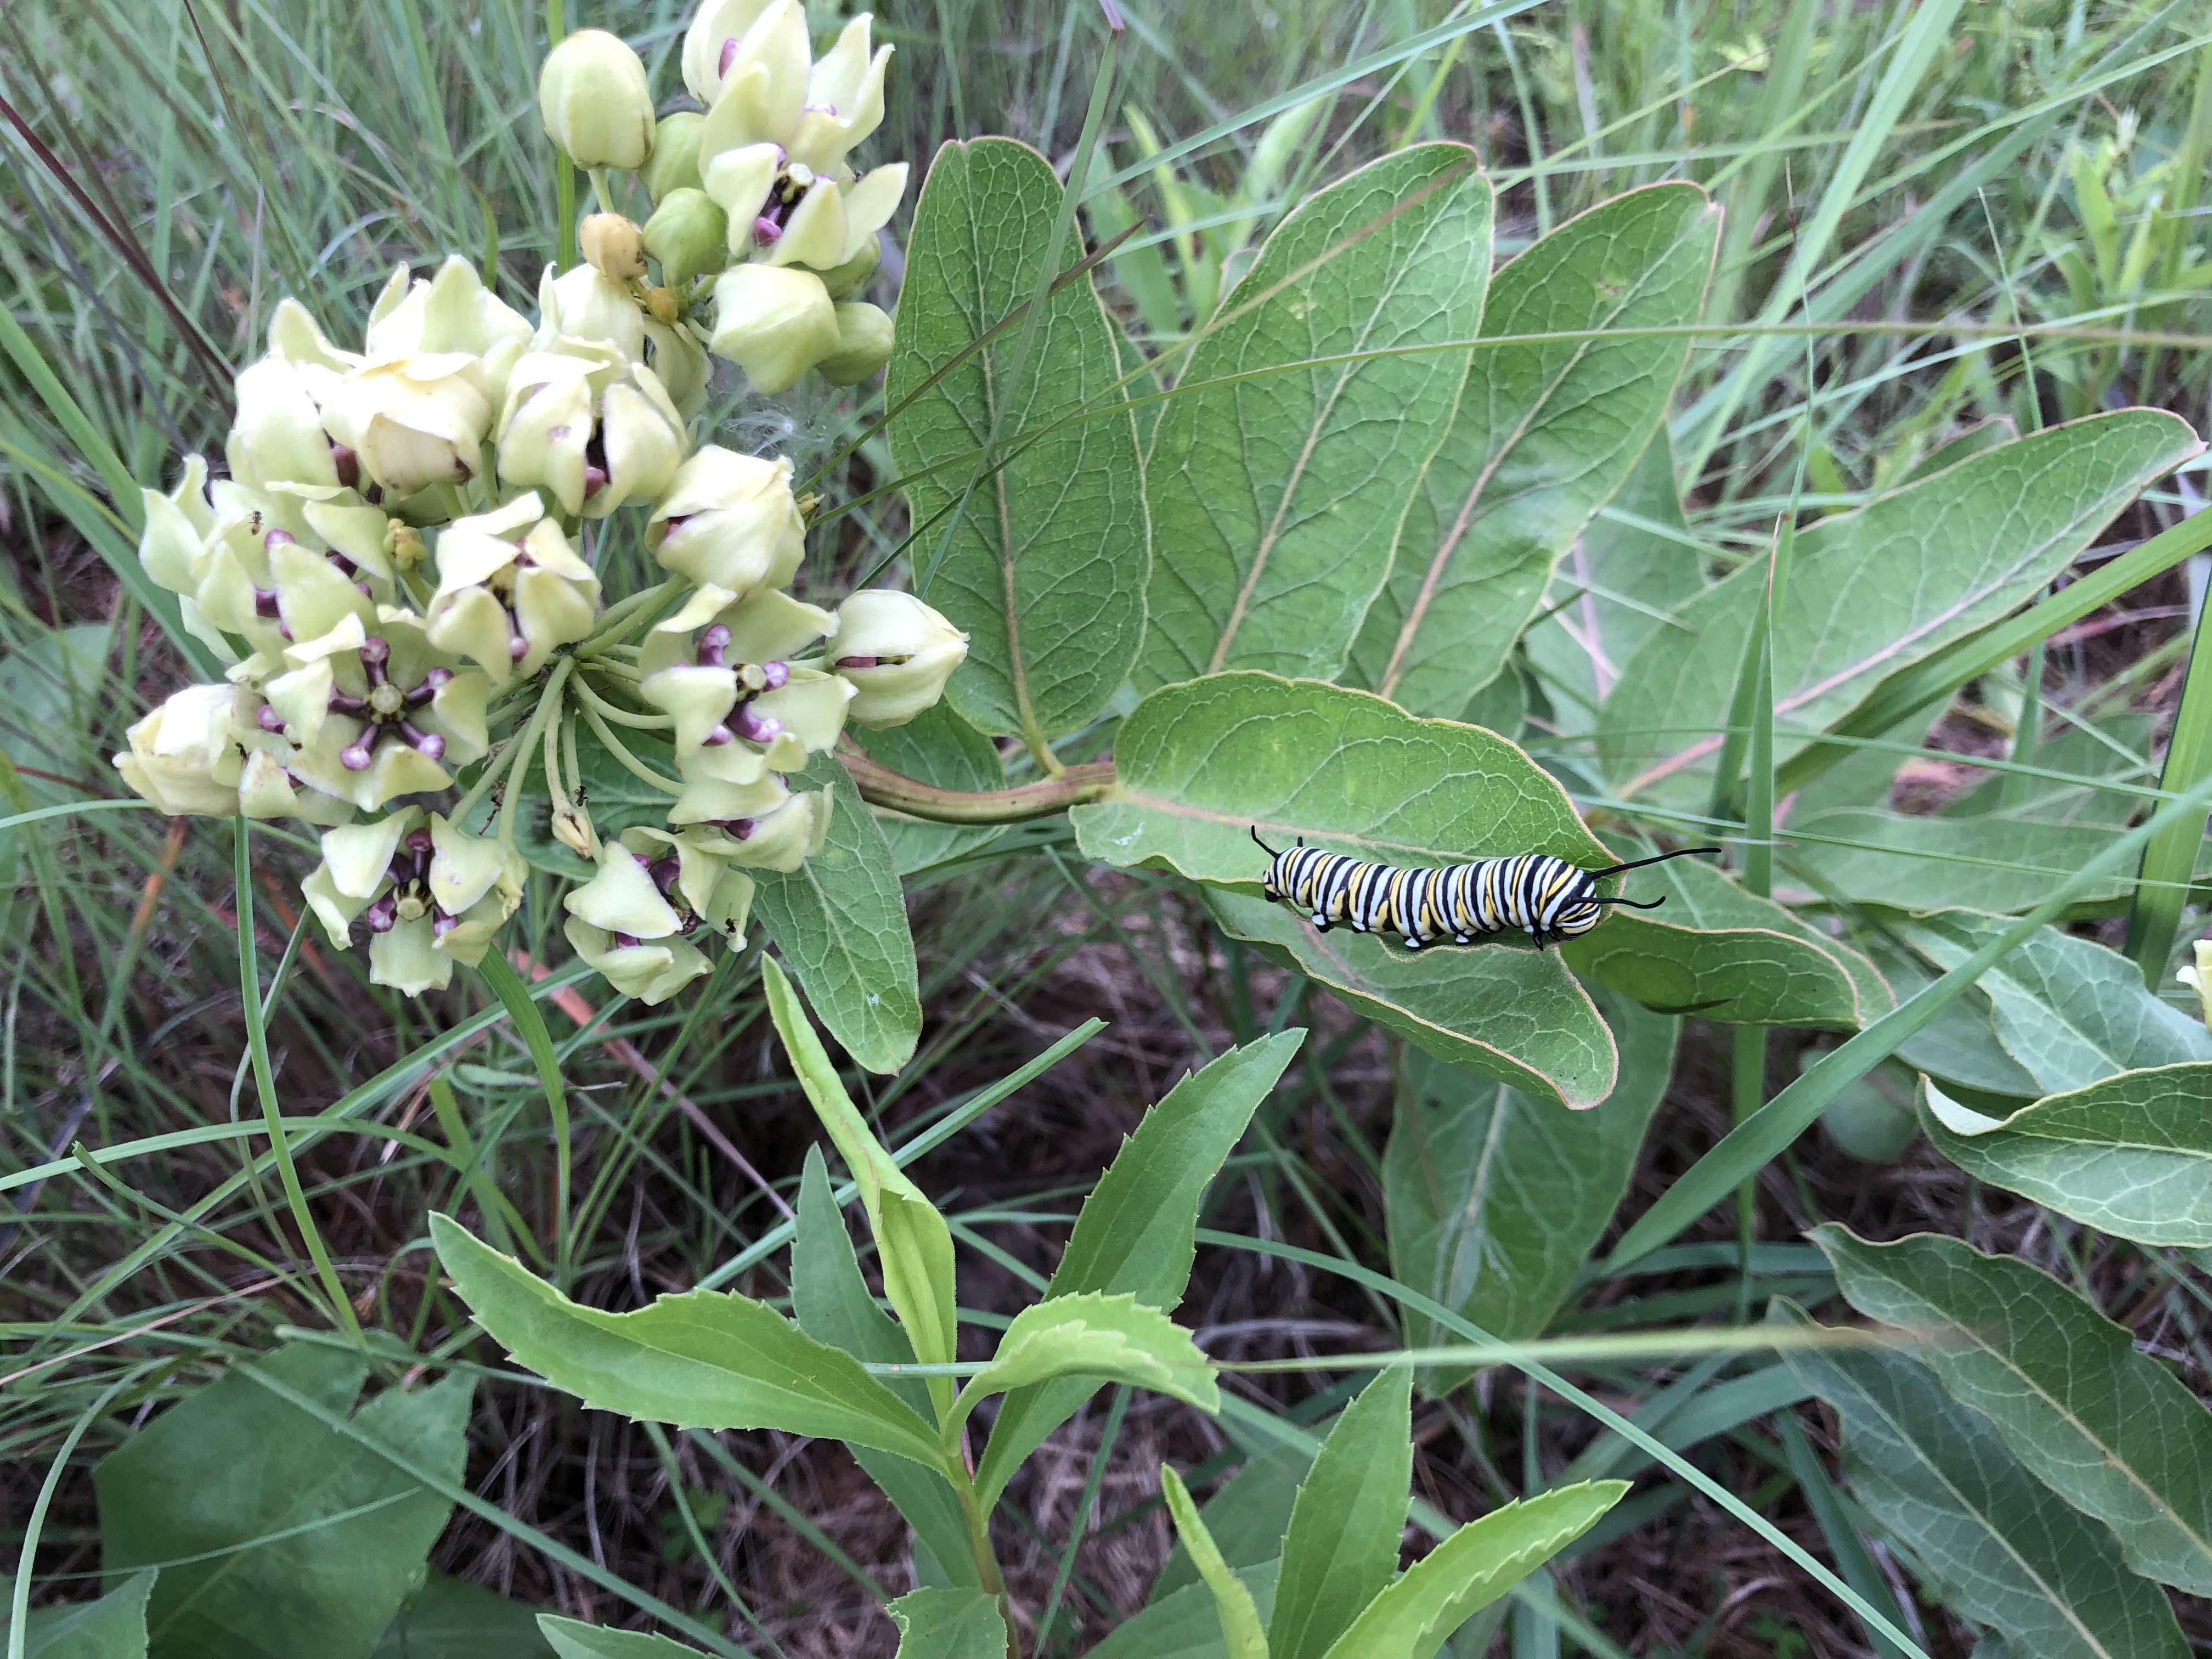 A Monarch caterpillar on a Milkweed plant.